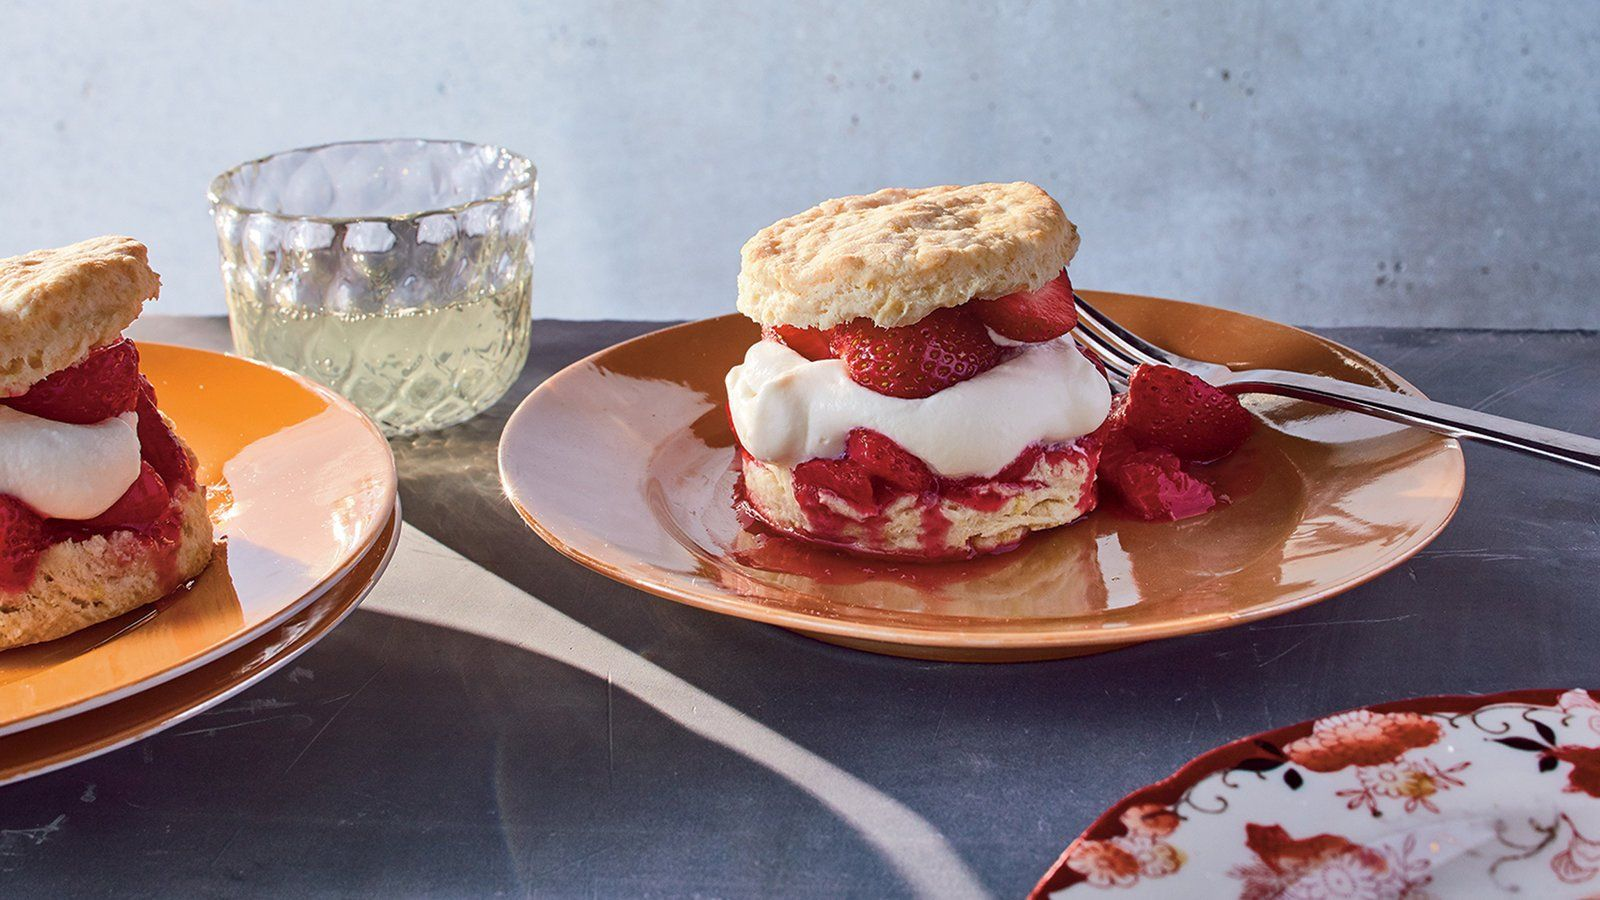 Buttermilk Biscuit Shortcakes With Strawberries Recipe Strawberry Recipes Buttermilk Biscuits Food Recipes